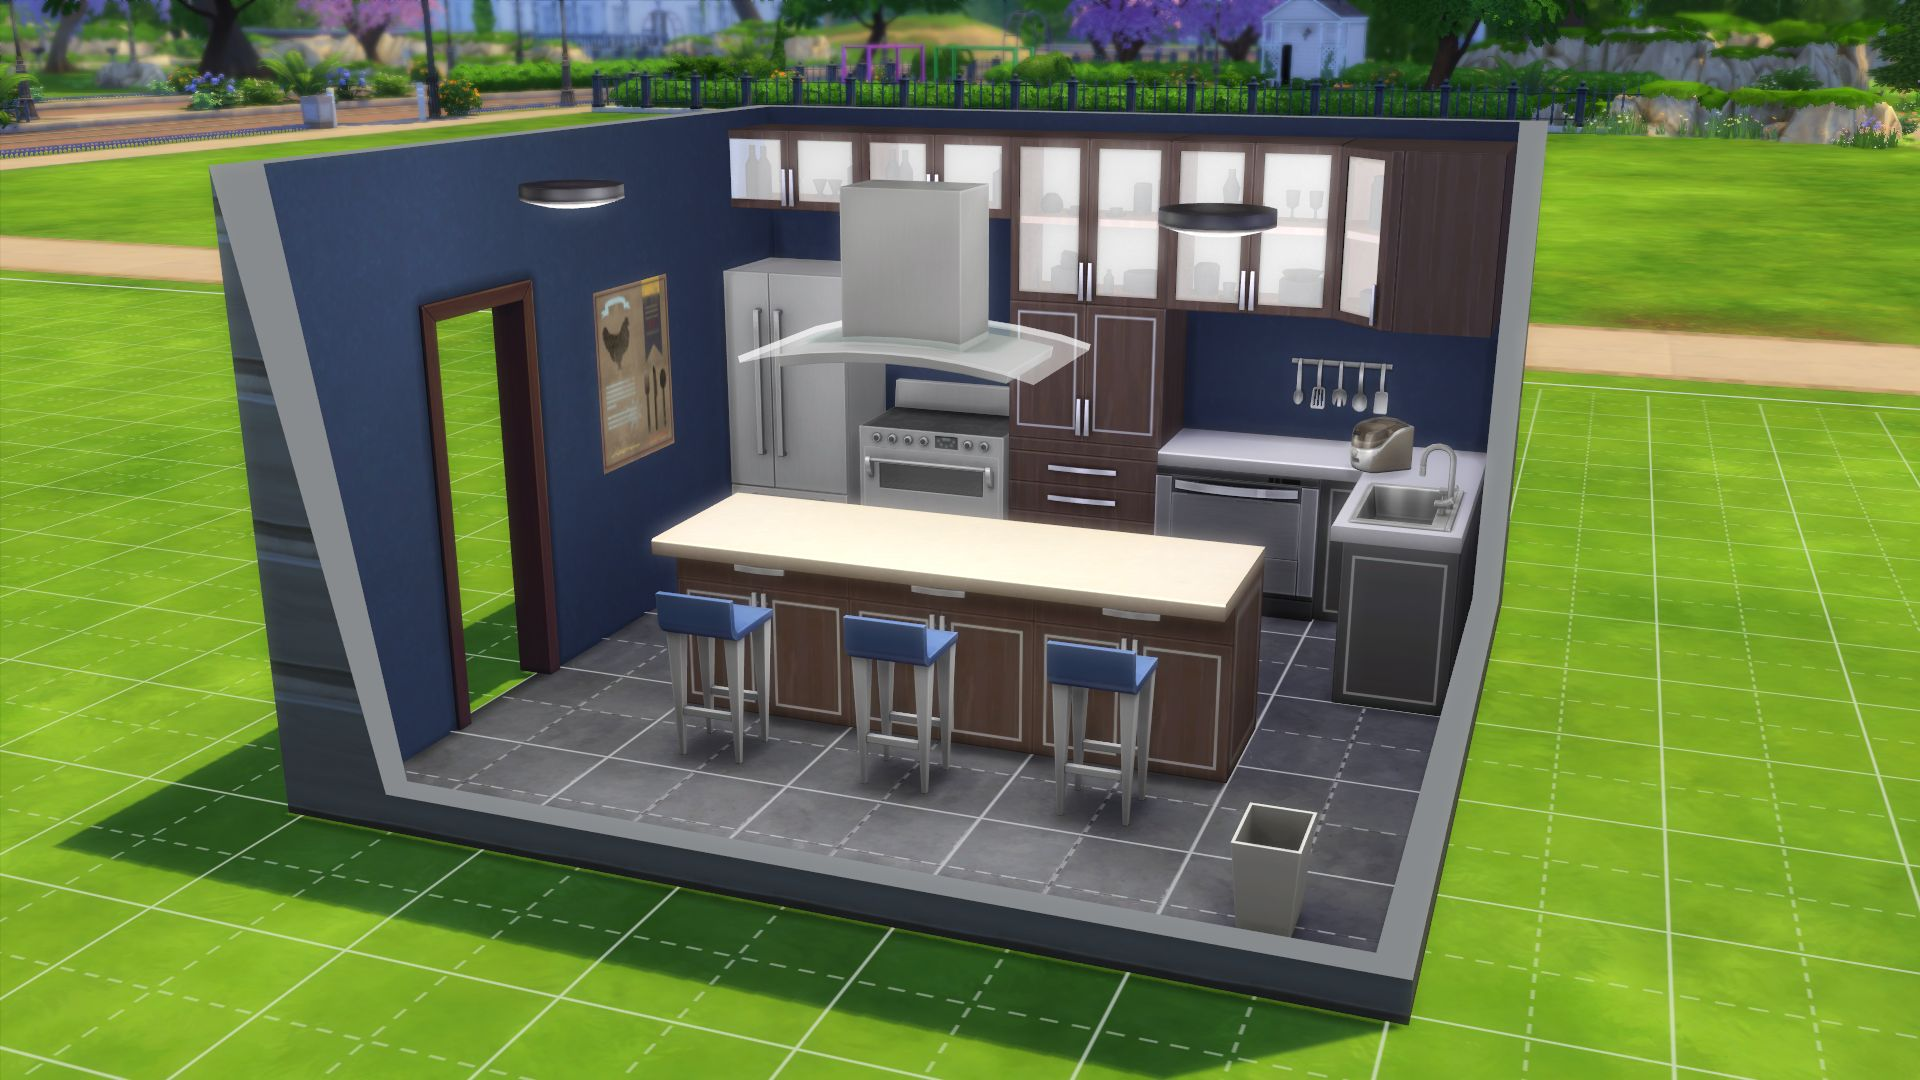 cool kitchen stuff foam mats the sims 4 pack review